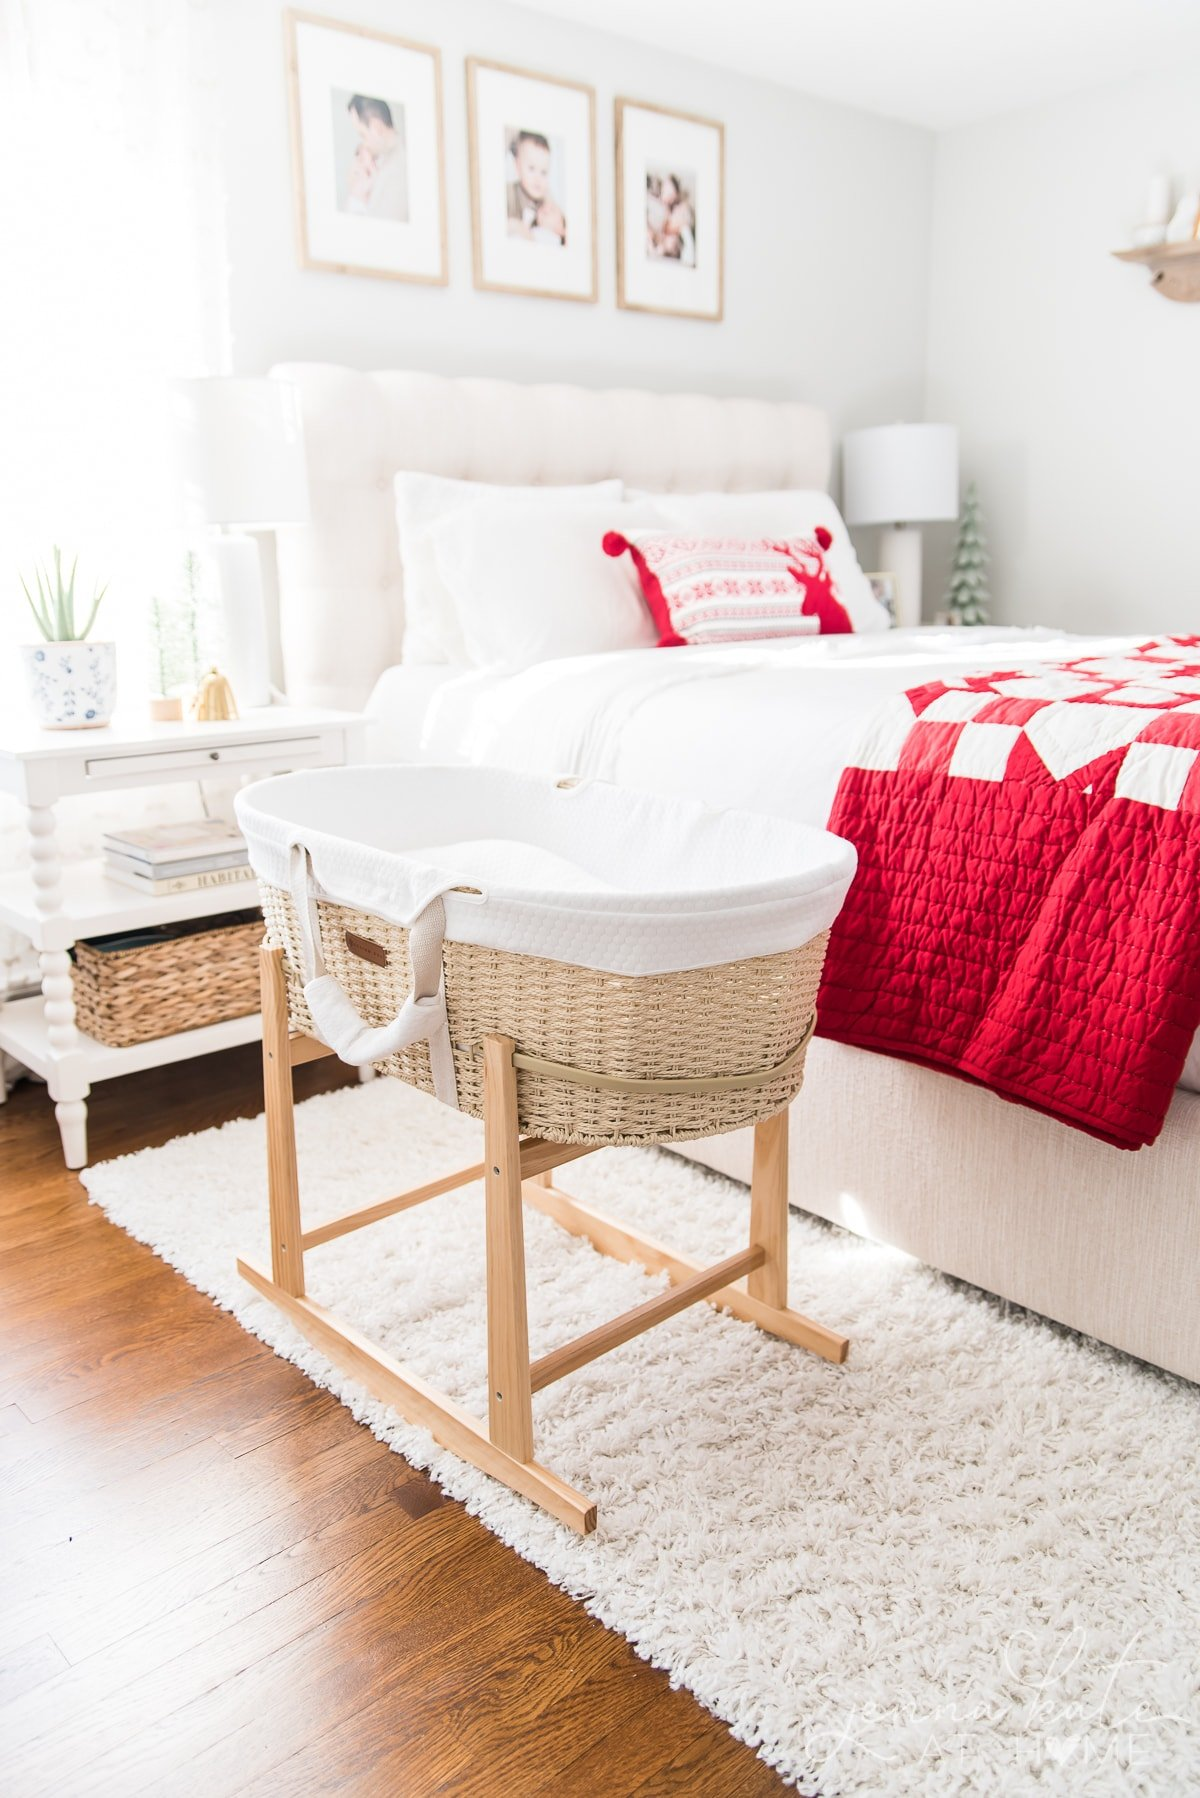 Bedroom decorated for Christmas with a bassinet next to the bed